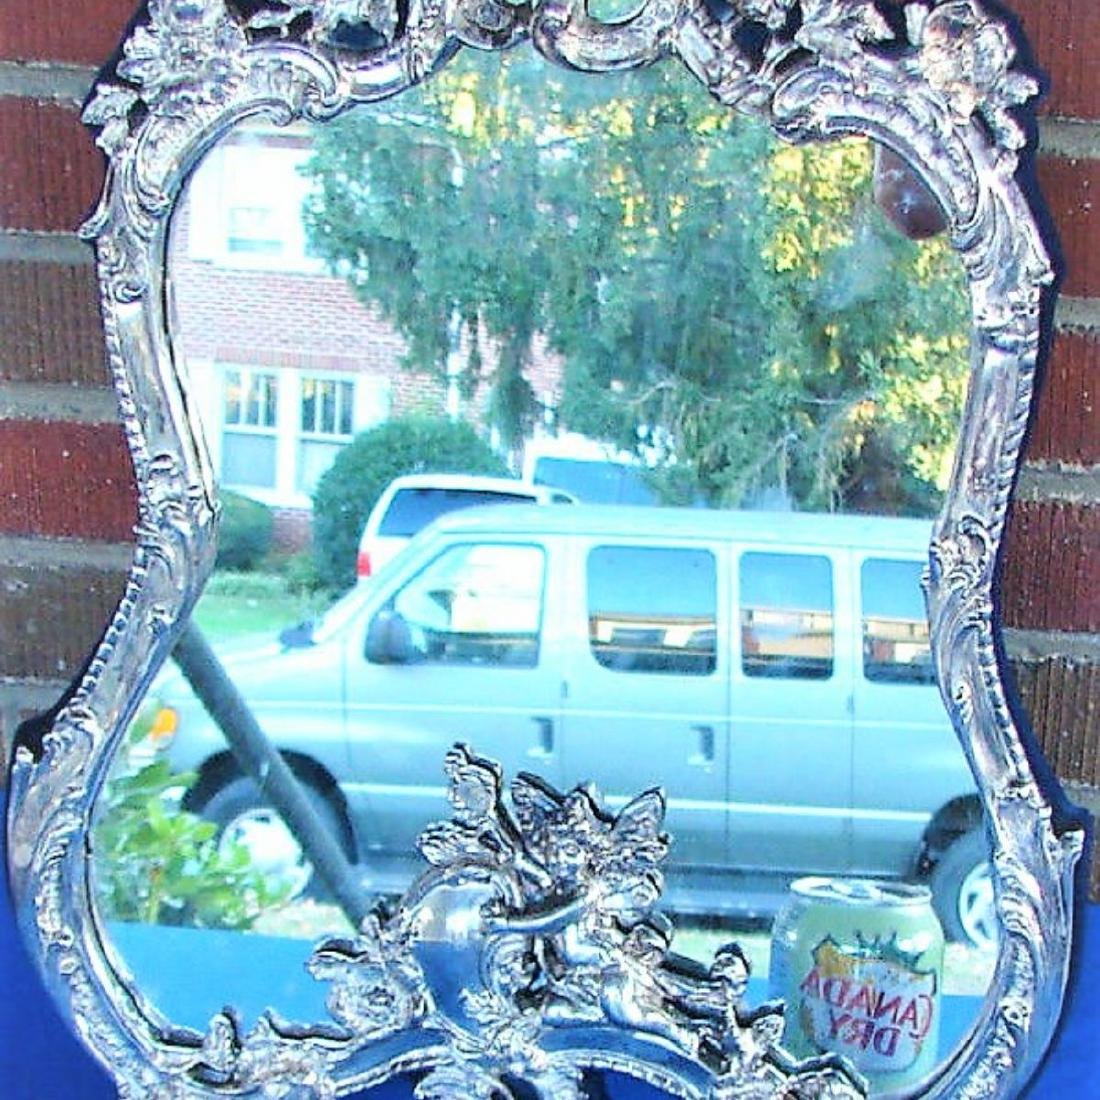 STERLING SILVER CHERUB PUTTI FRAME MIRROR SIGNED BY JR